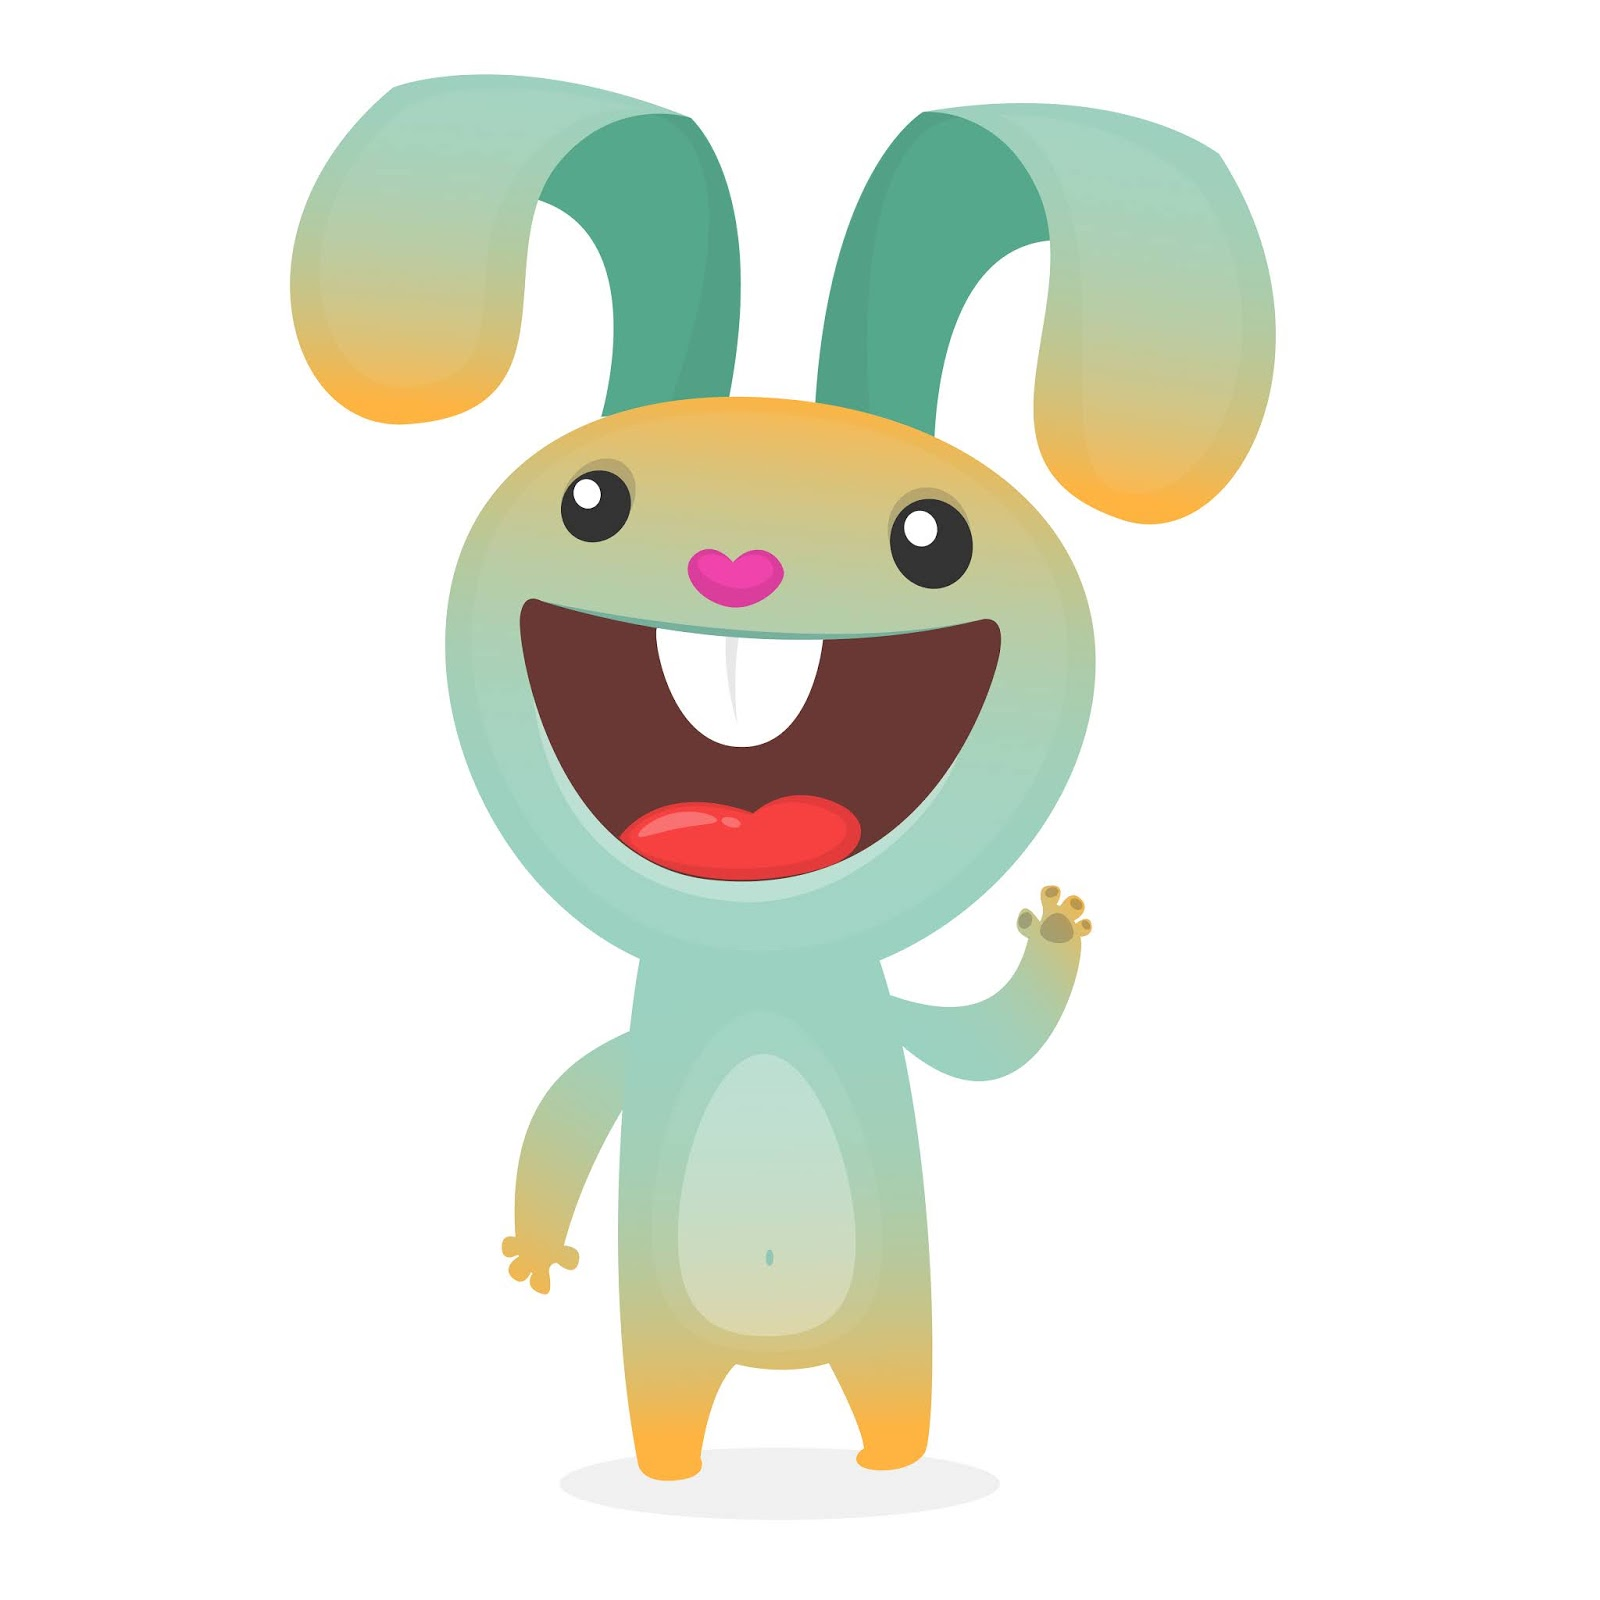 Cute Bunny Rabbit Cartoon Free Download Vector CDR, AI, EPS and PNG Formats